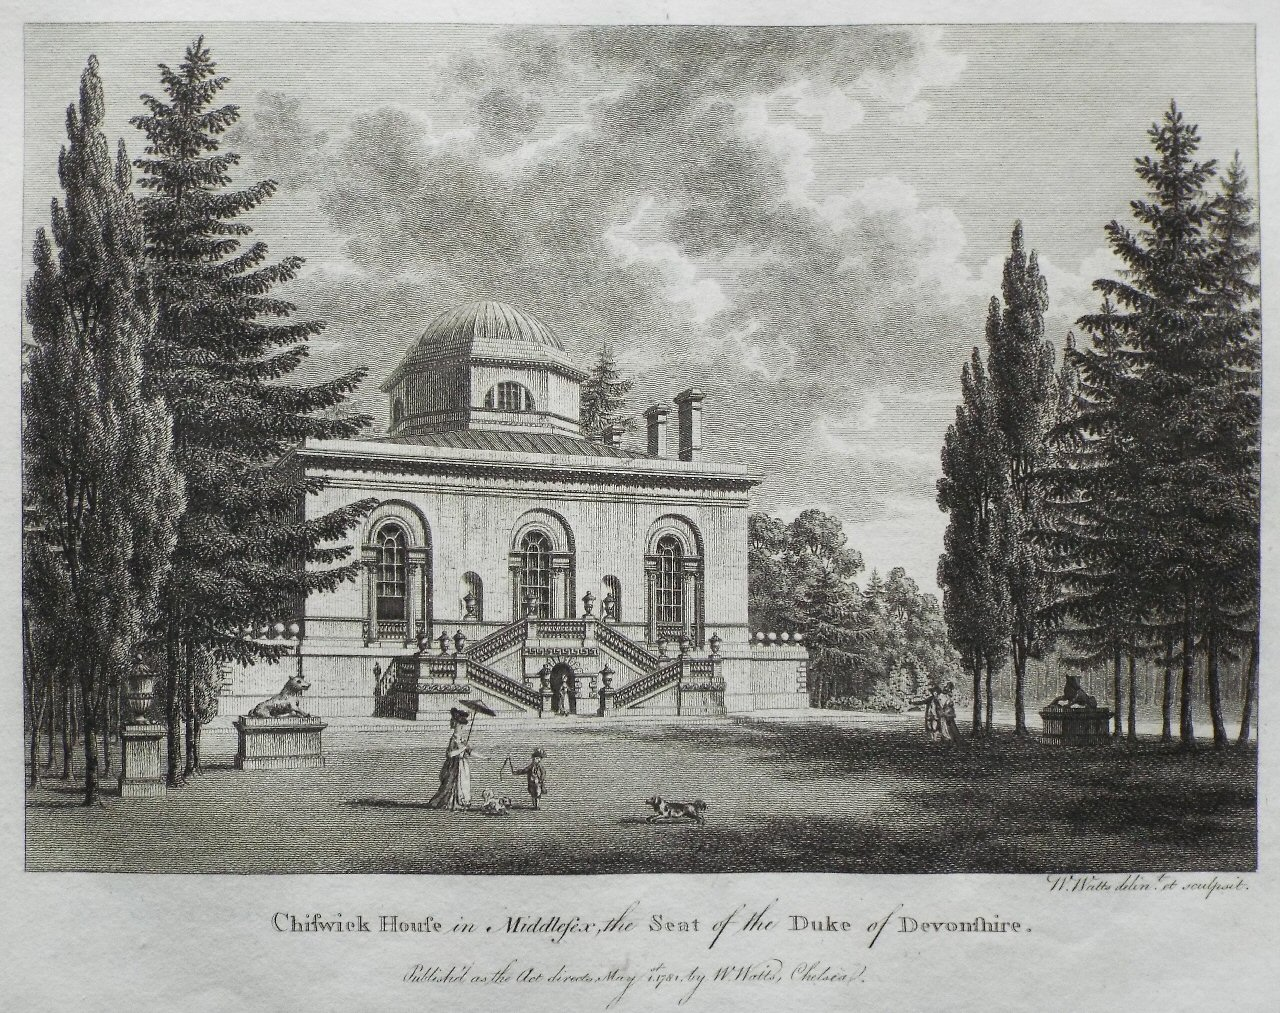 Print - Chiswick House in Middlesex, the Seat of the Duke of Devonshire. - Watts